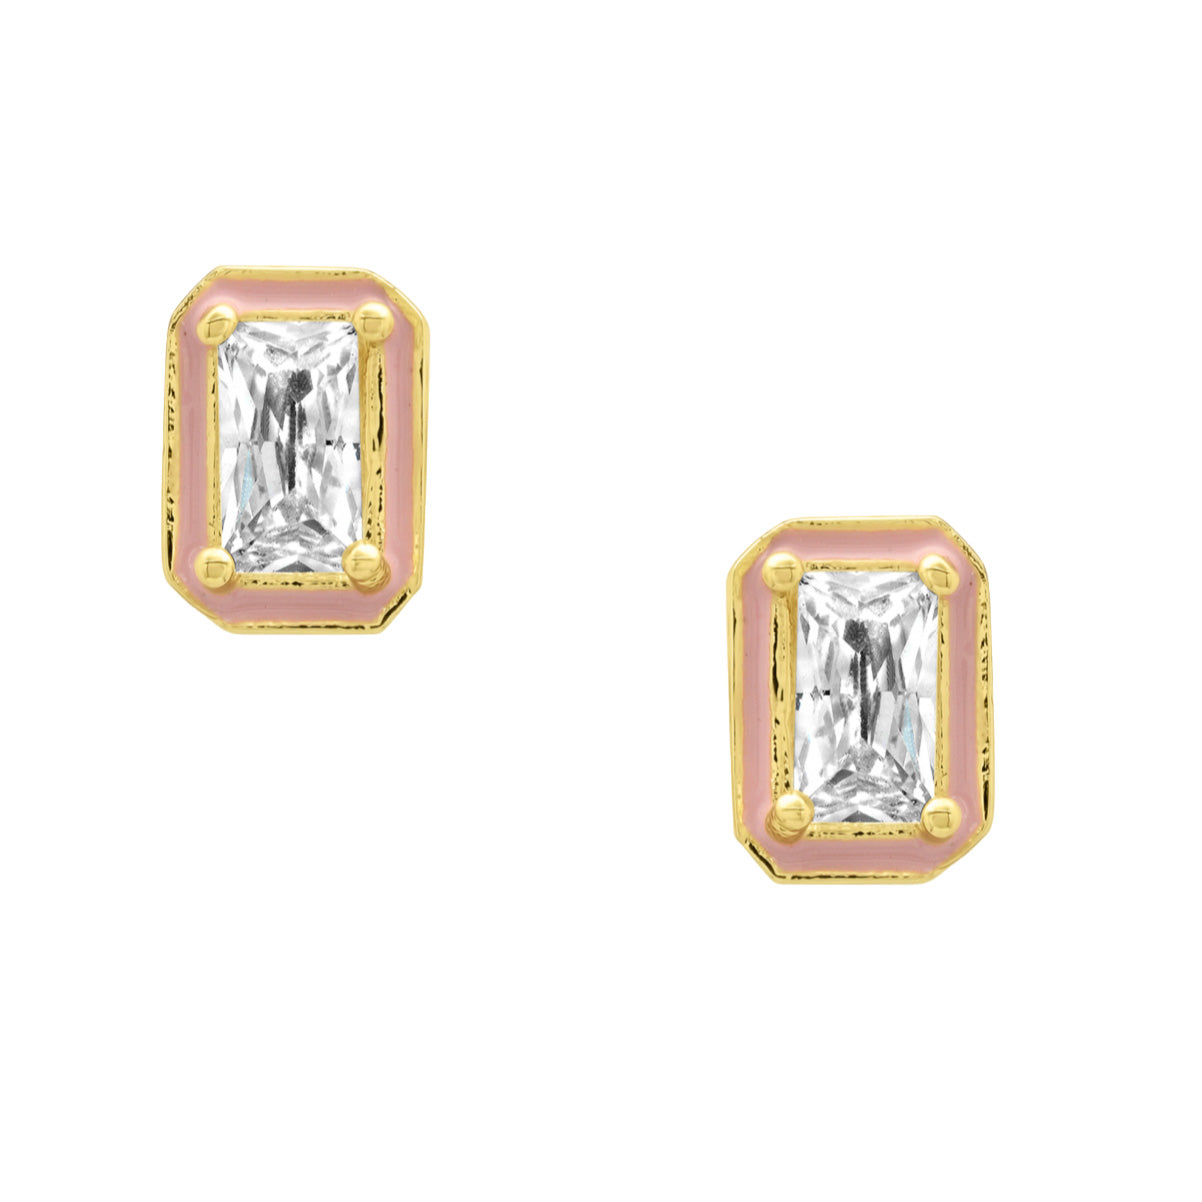 Baguette with Pink Enamel Stud Earrings